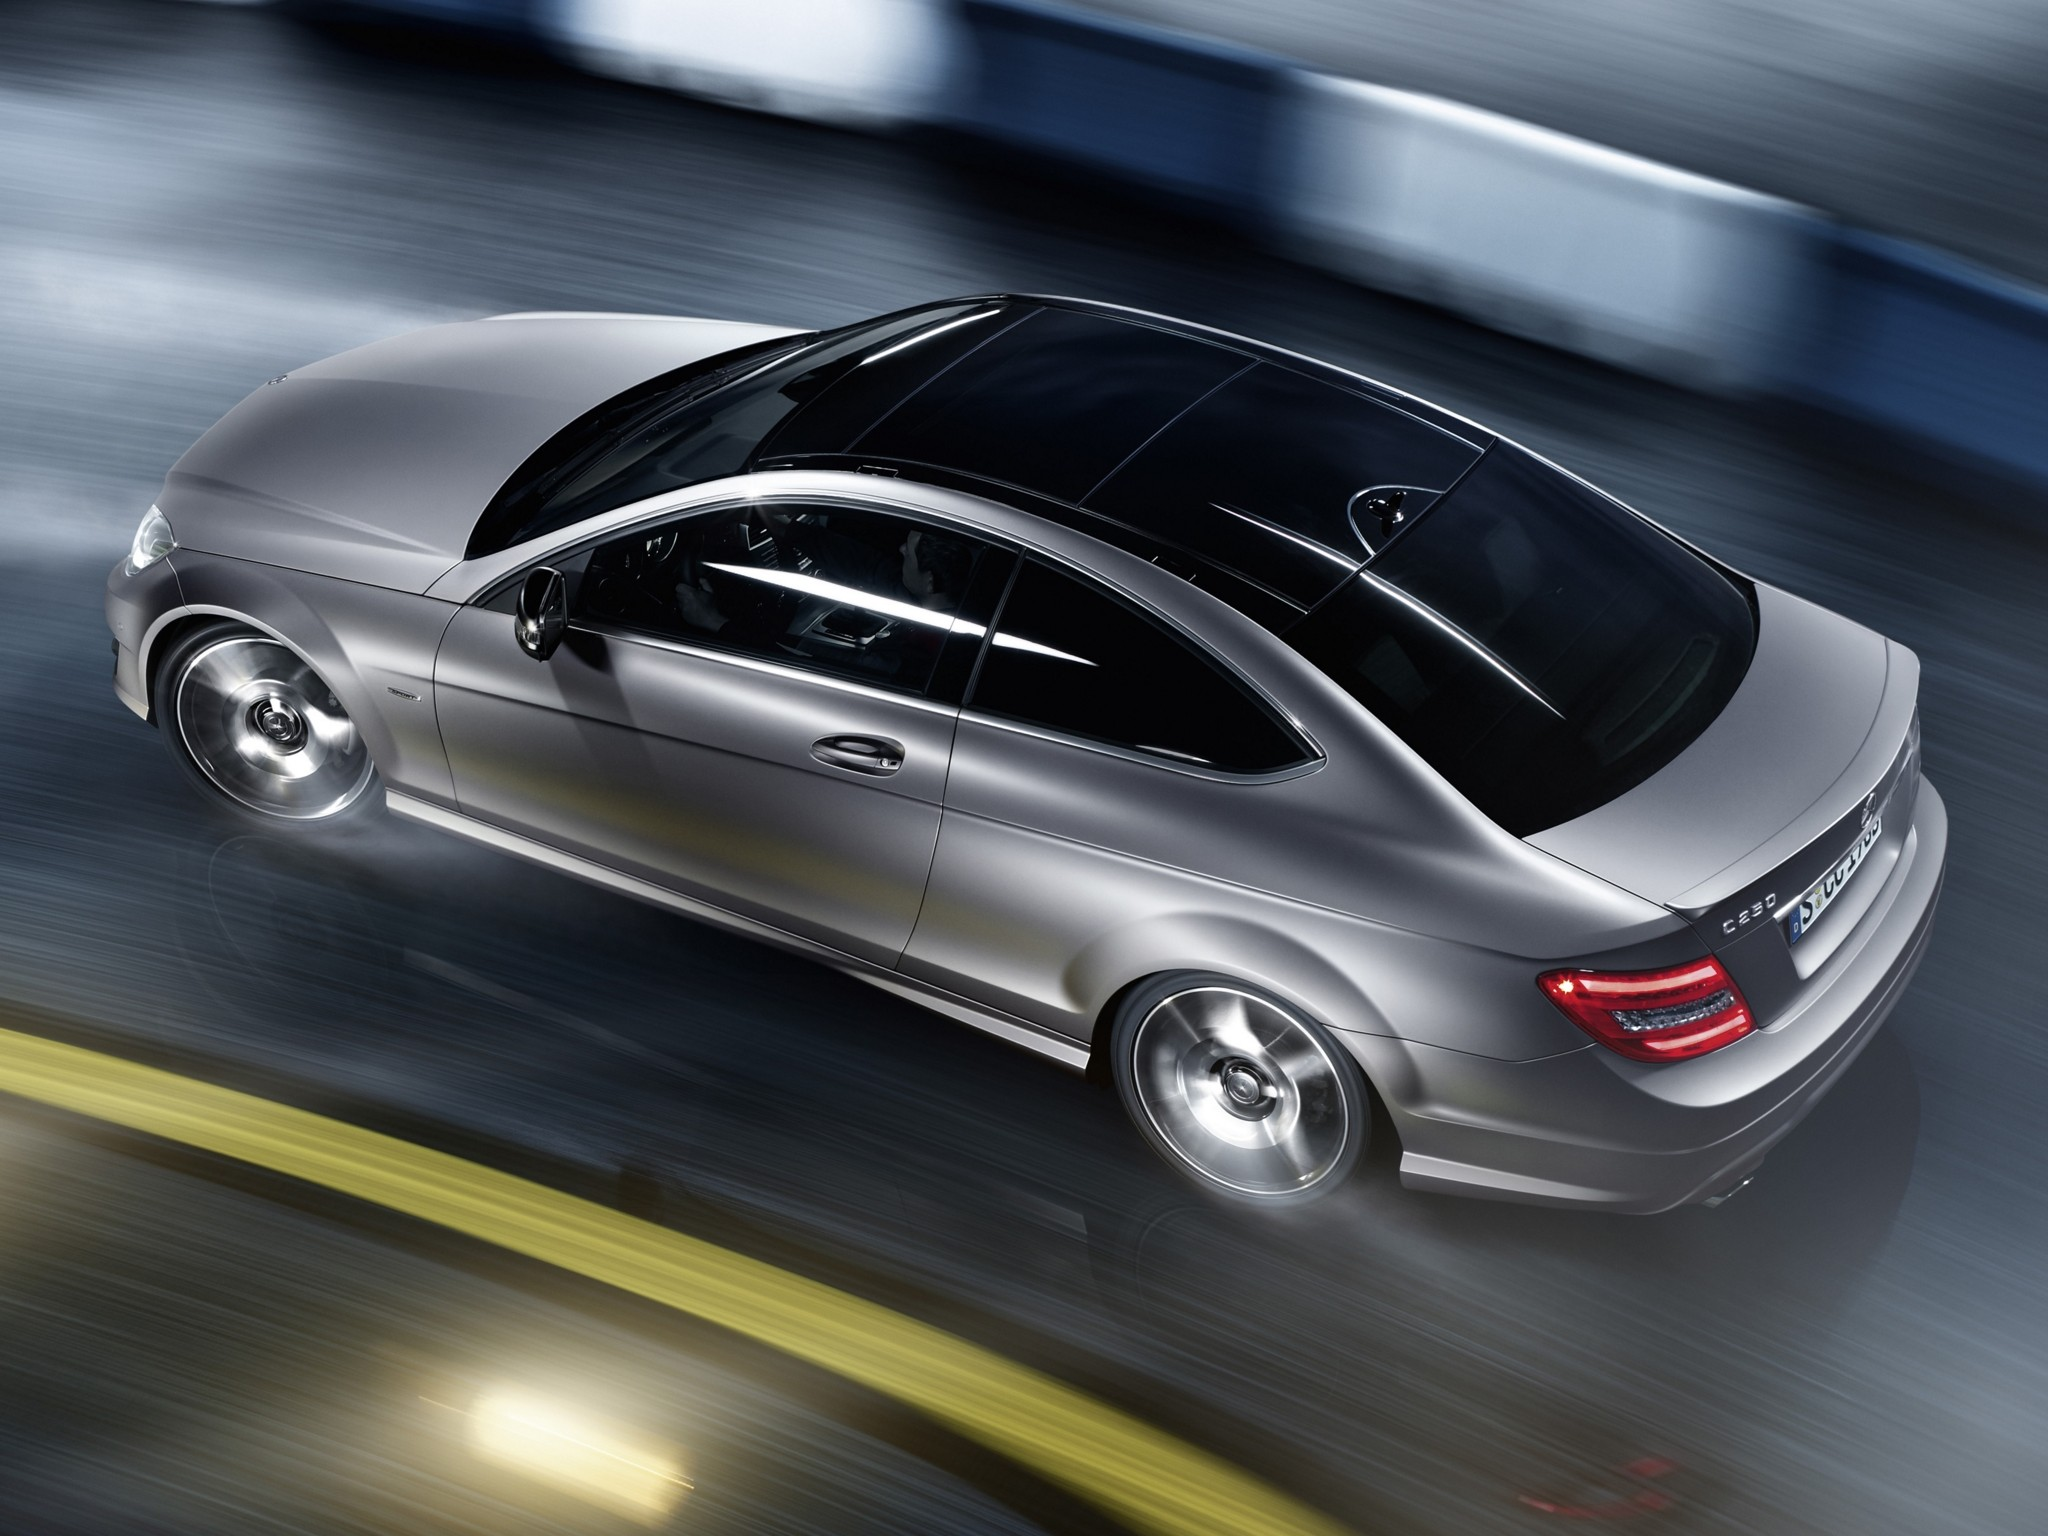 mercedes benz c klasse coupe c204 specs 2011 2012 2013 autoevolution. Black Bedroom Furniture Sets. Home Design Ideas